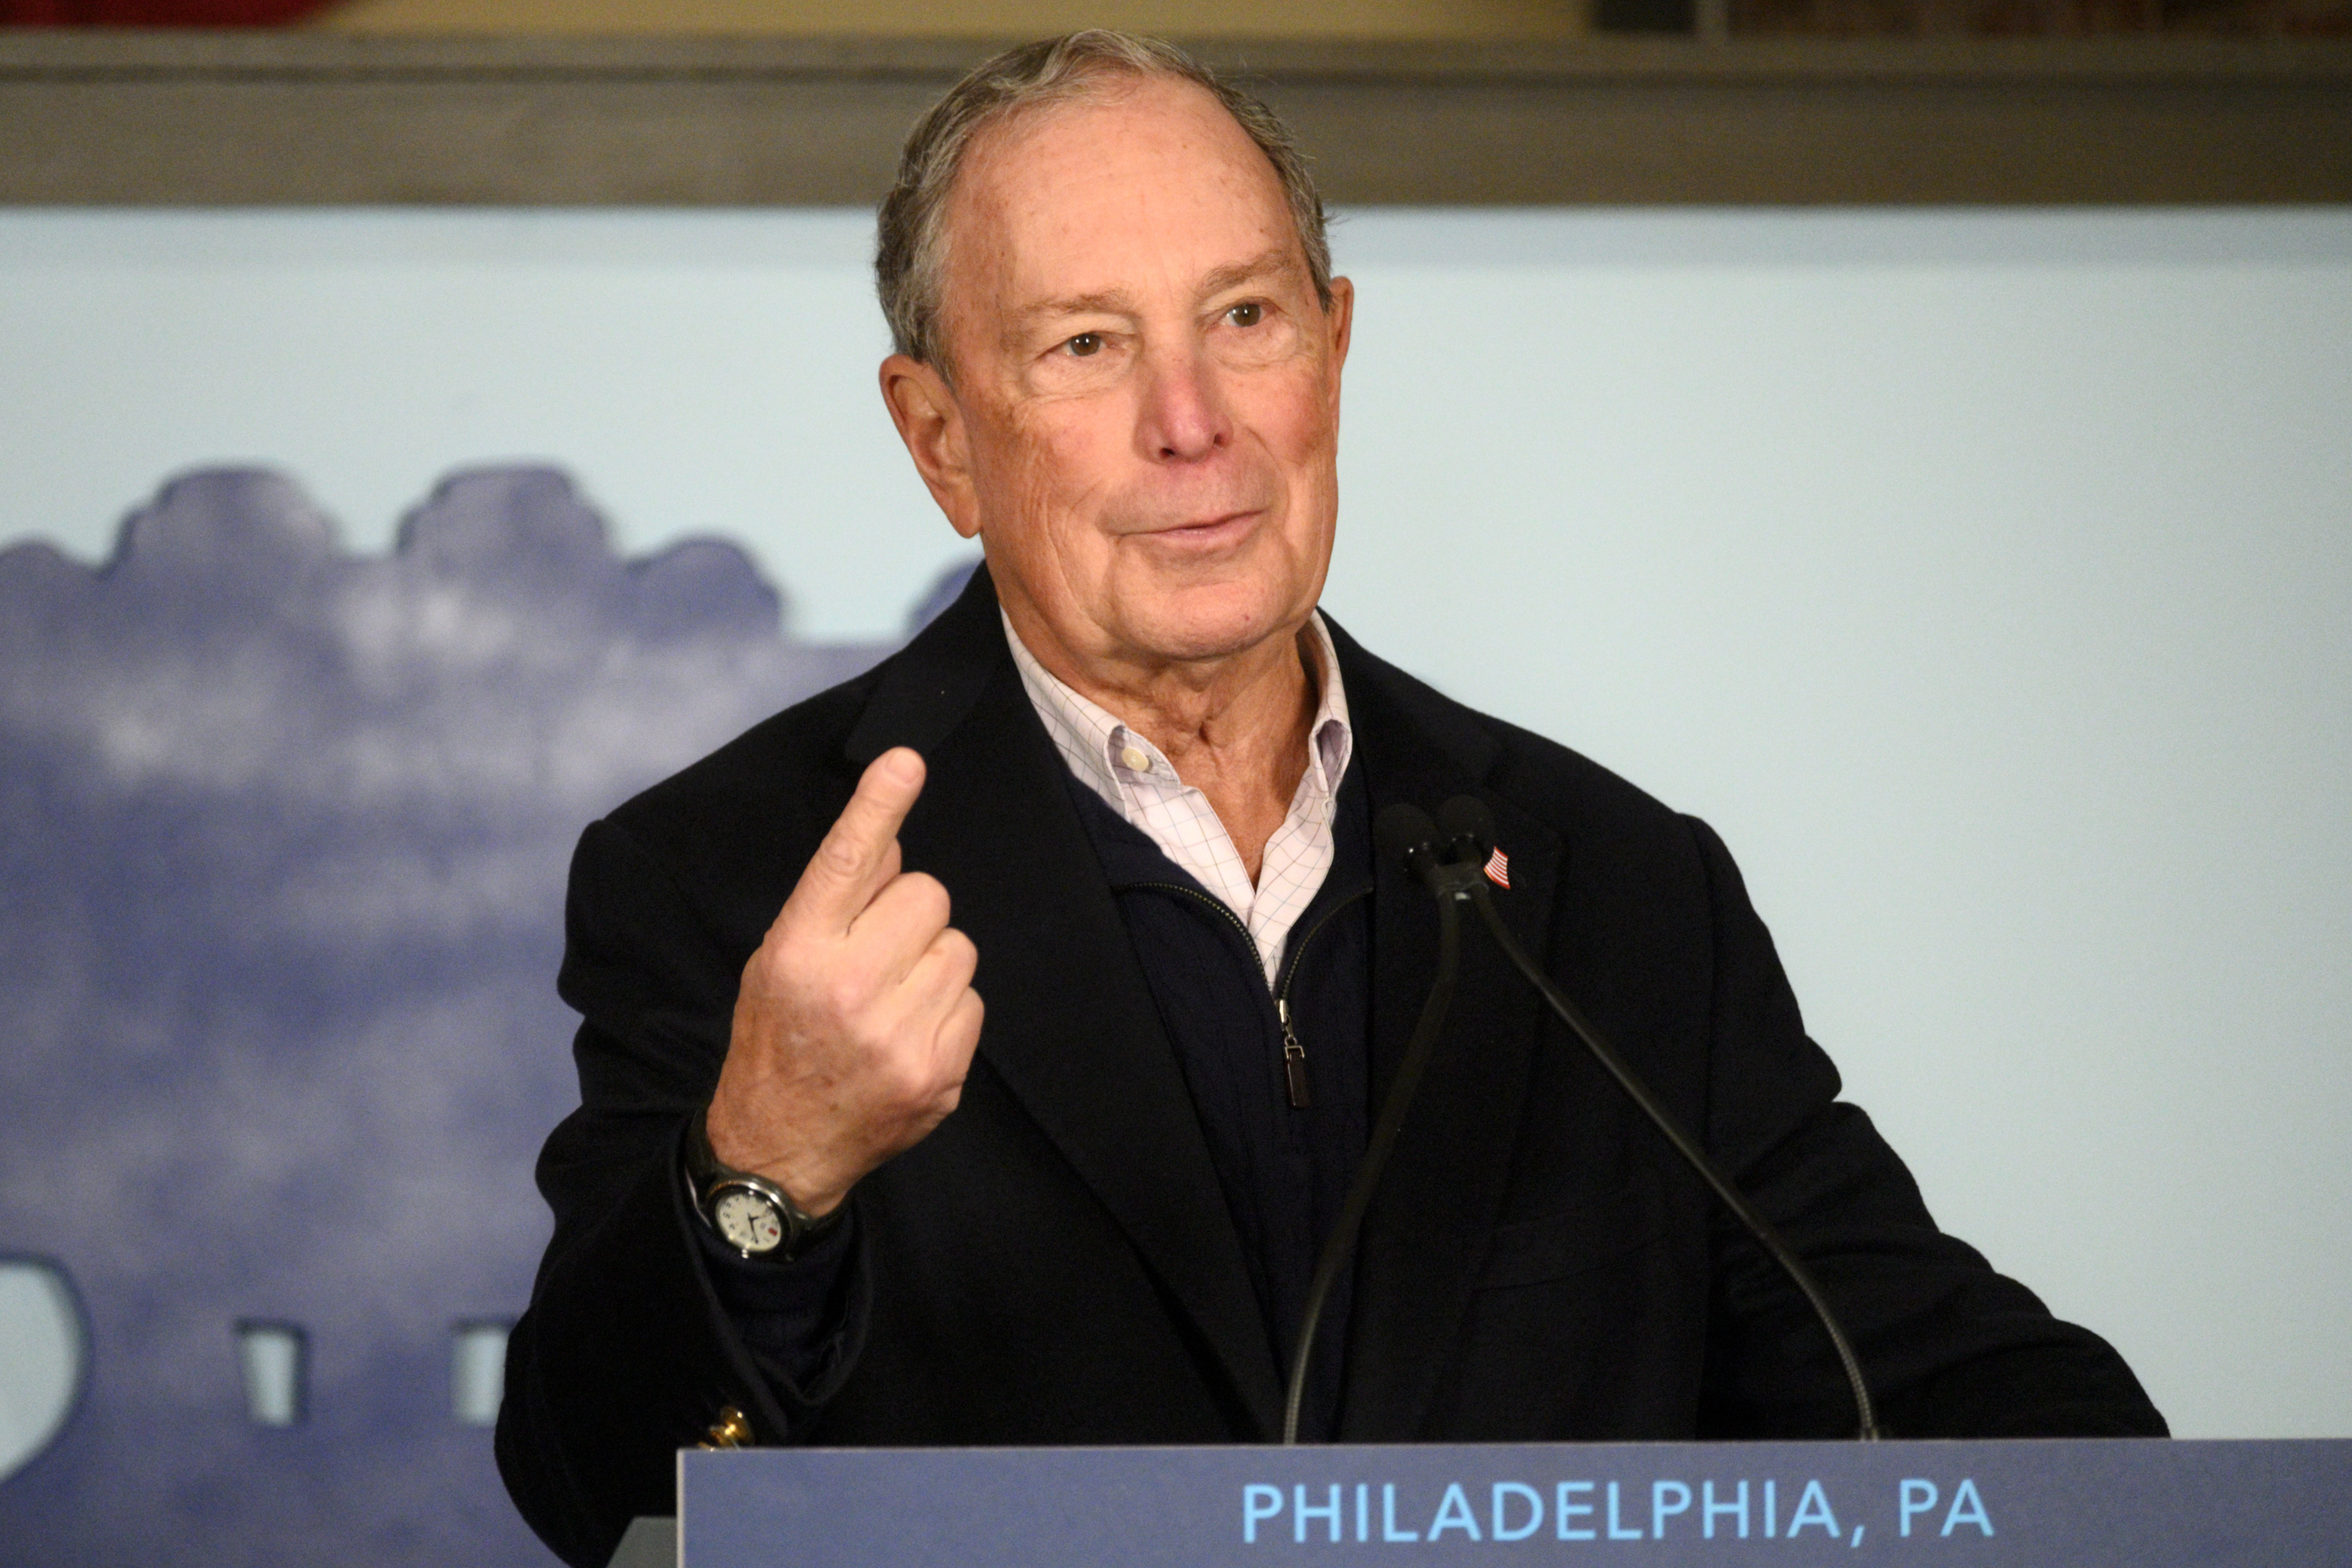 Bloomberg Opens Campaign Office in Philadelphia